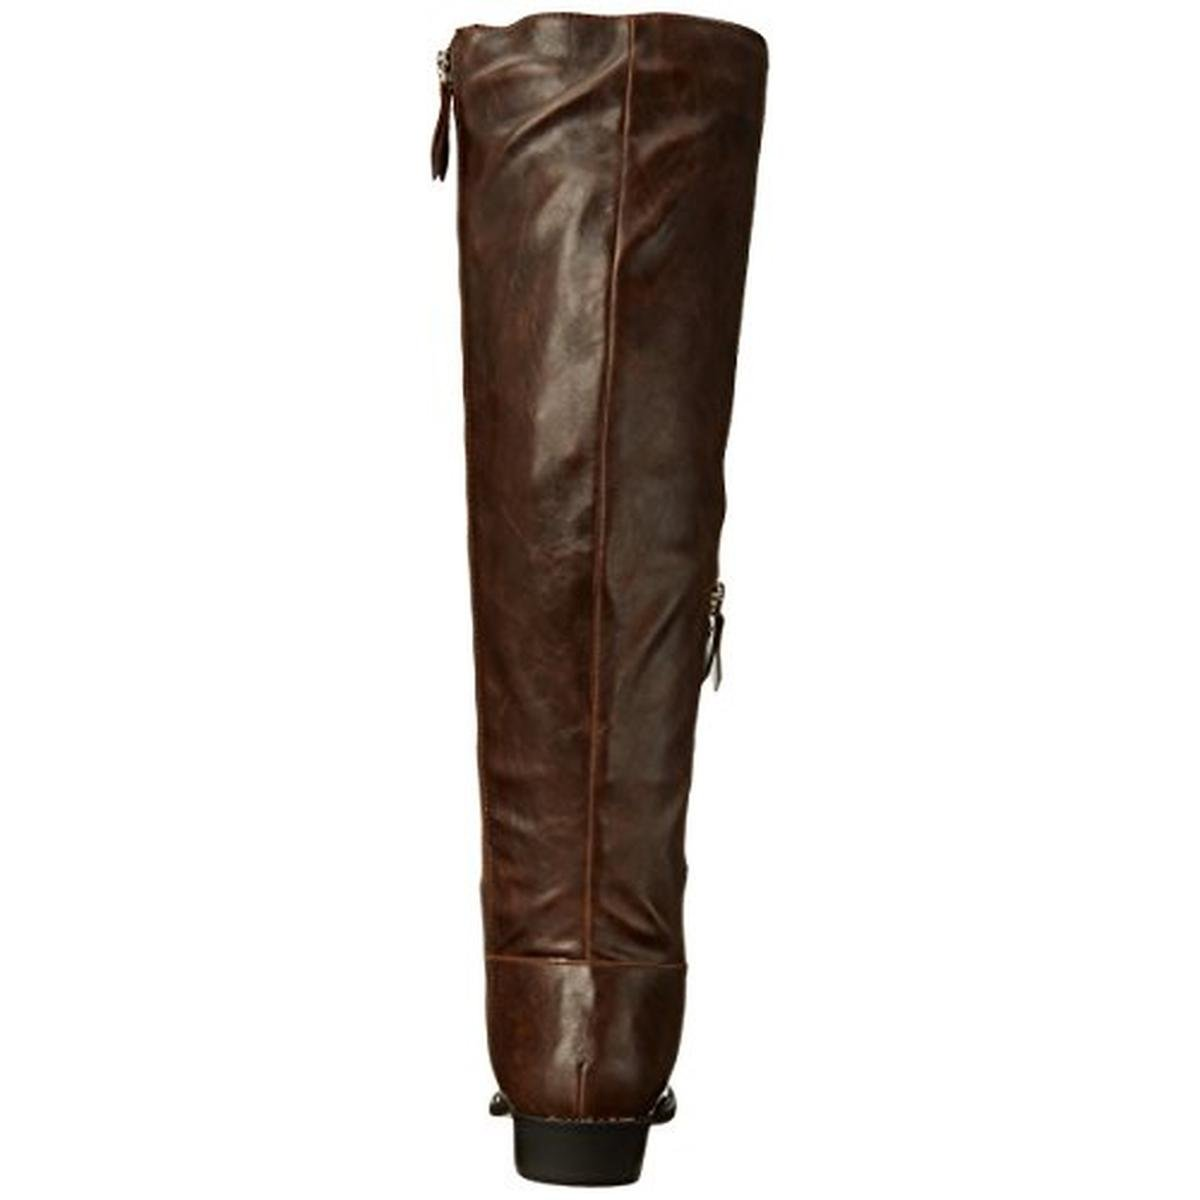 Penny Loves Kenny Women's Dayton Boot, Brown, 7 M US by Penny Loves Kenny (Image #2)